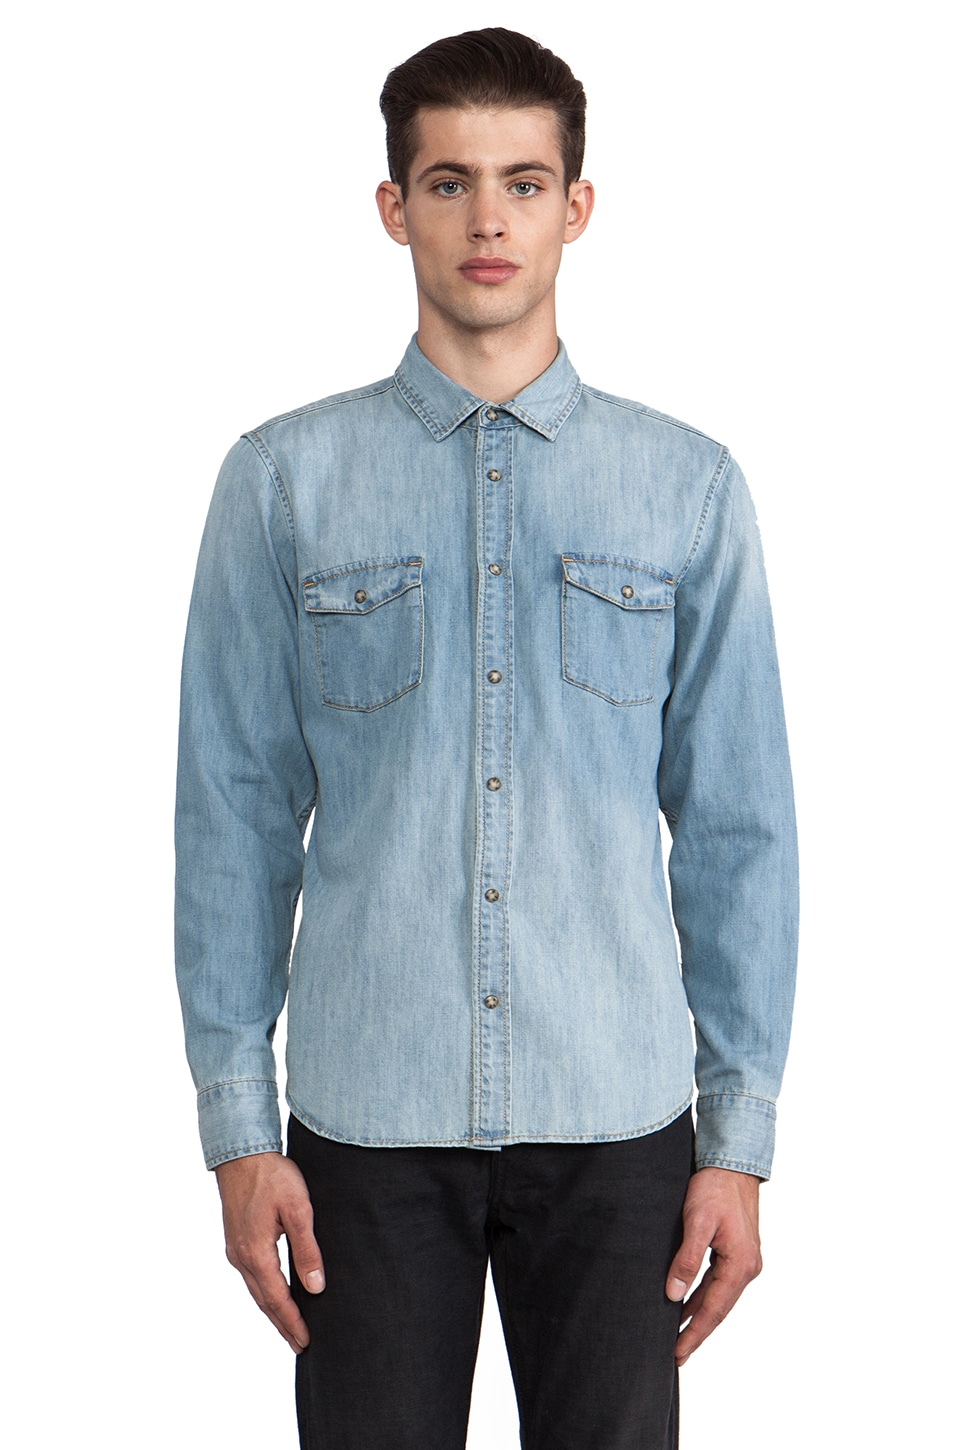 Zanerobe Reno Denim Shirt in Blonde